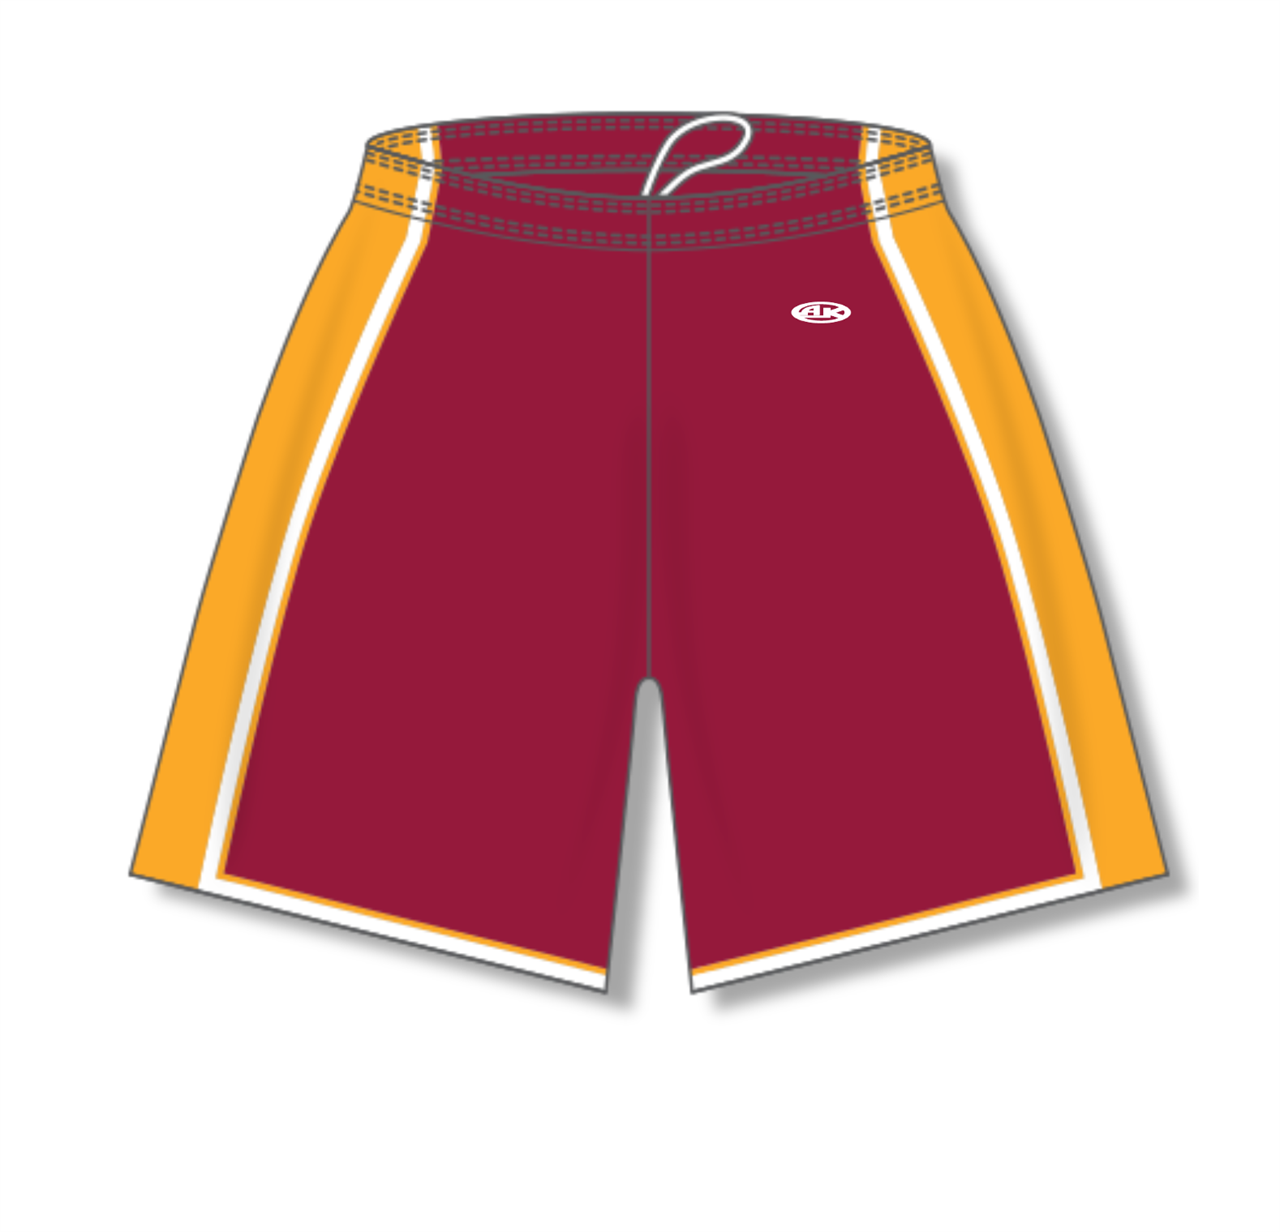 Picture of AK Pro Replica Basketball Shorts (Youth)